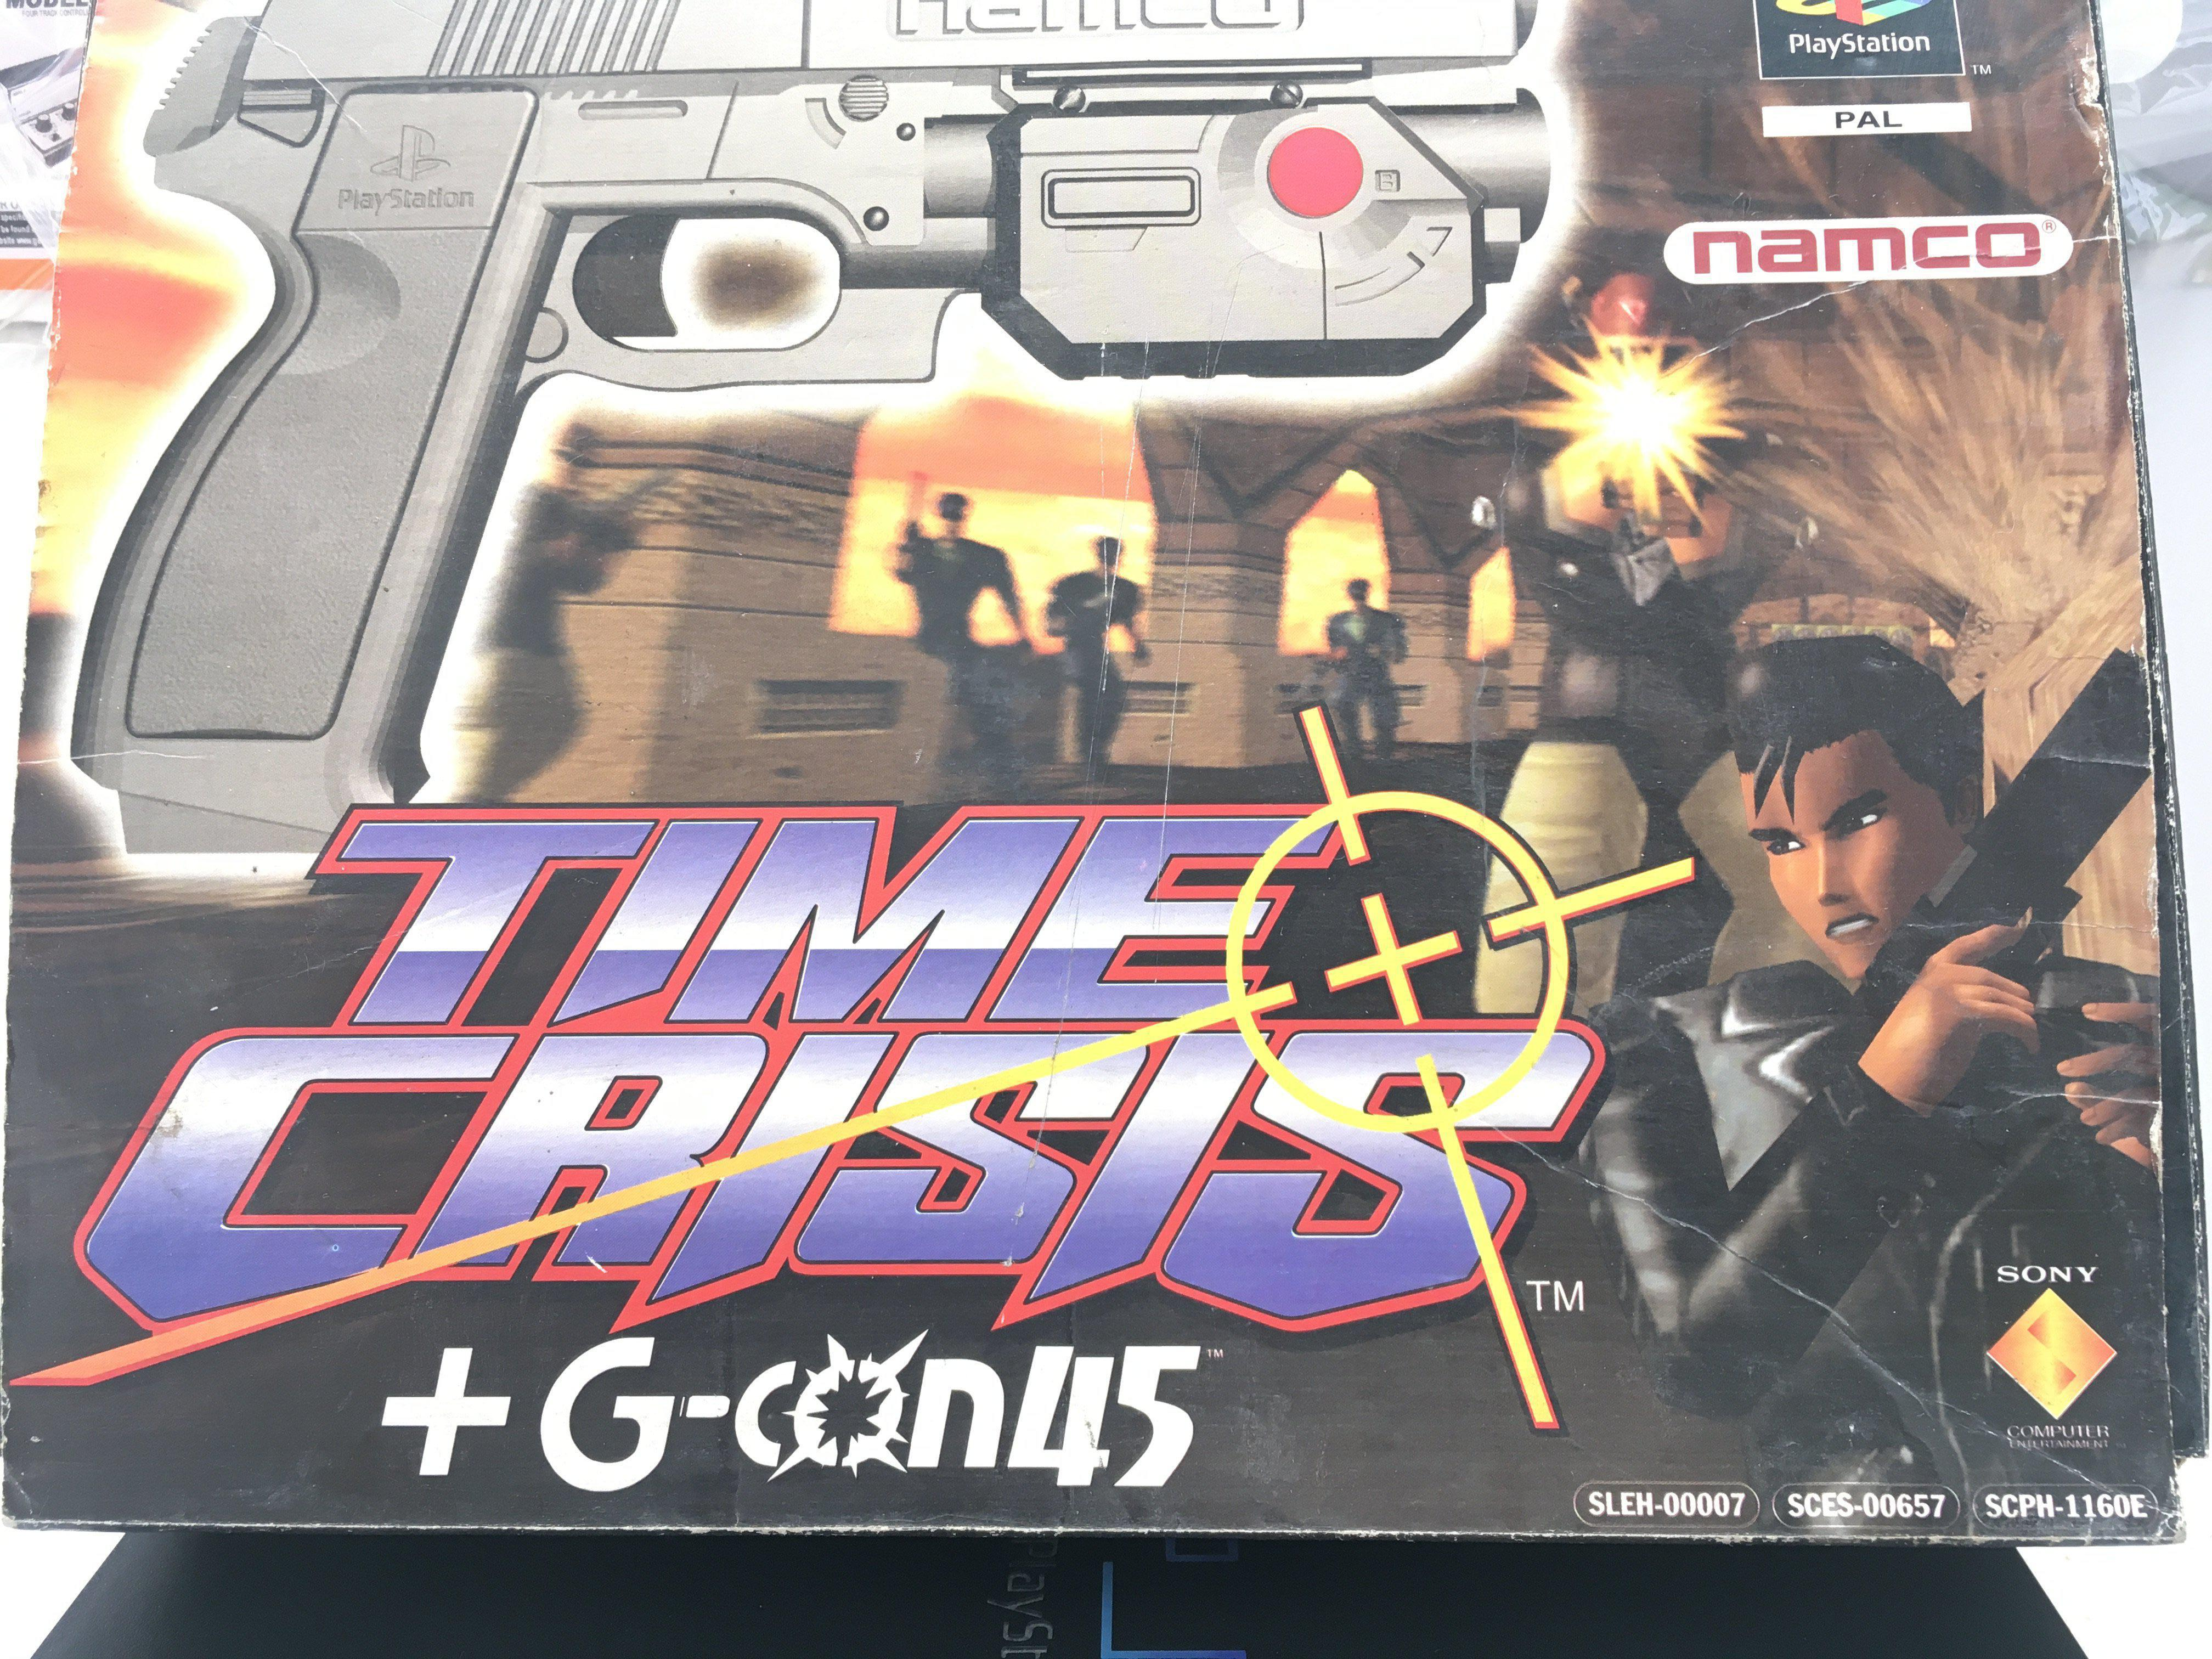 A PlayStation 2 with 4 Games including Time Crisis - Image 2 of 2